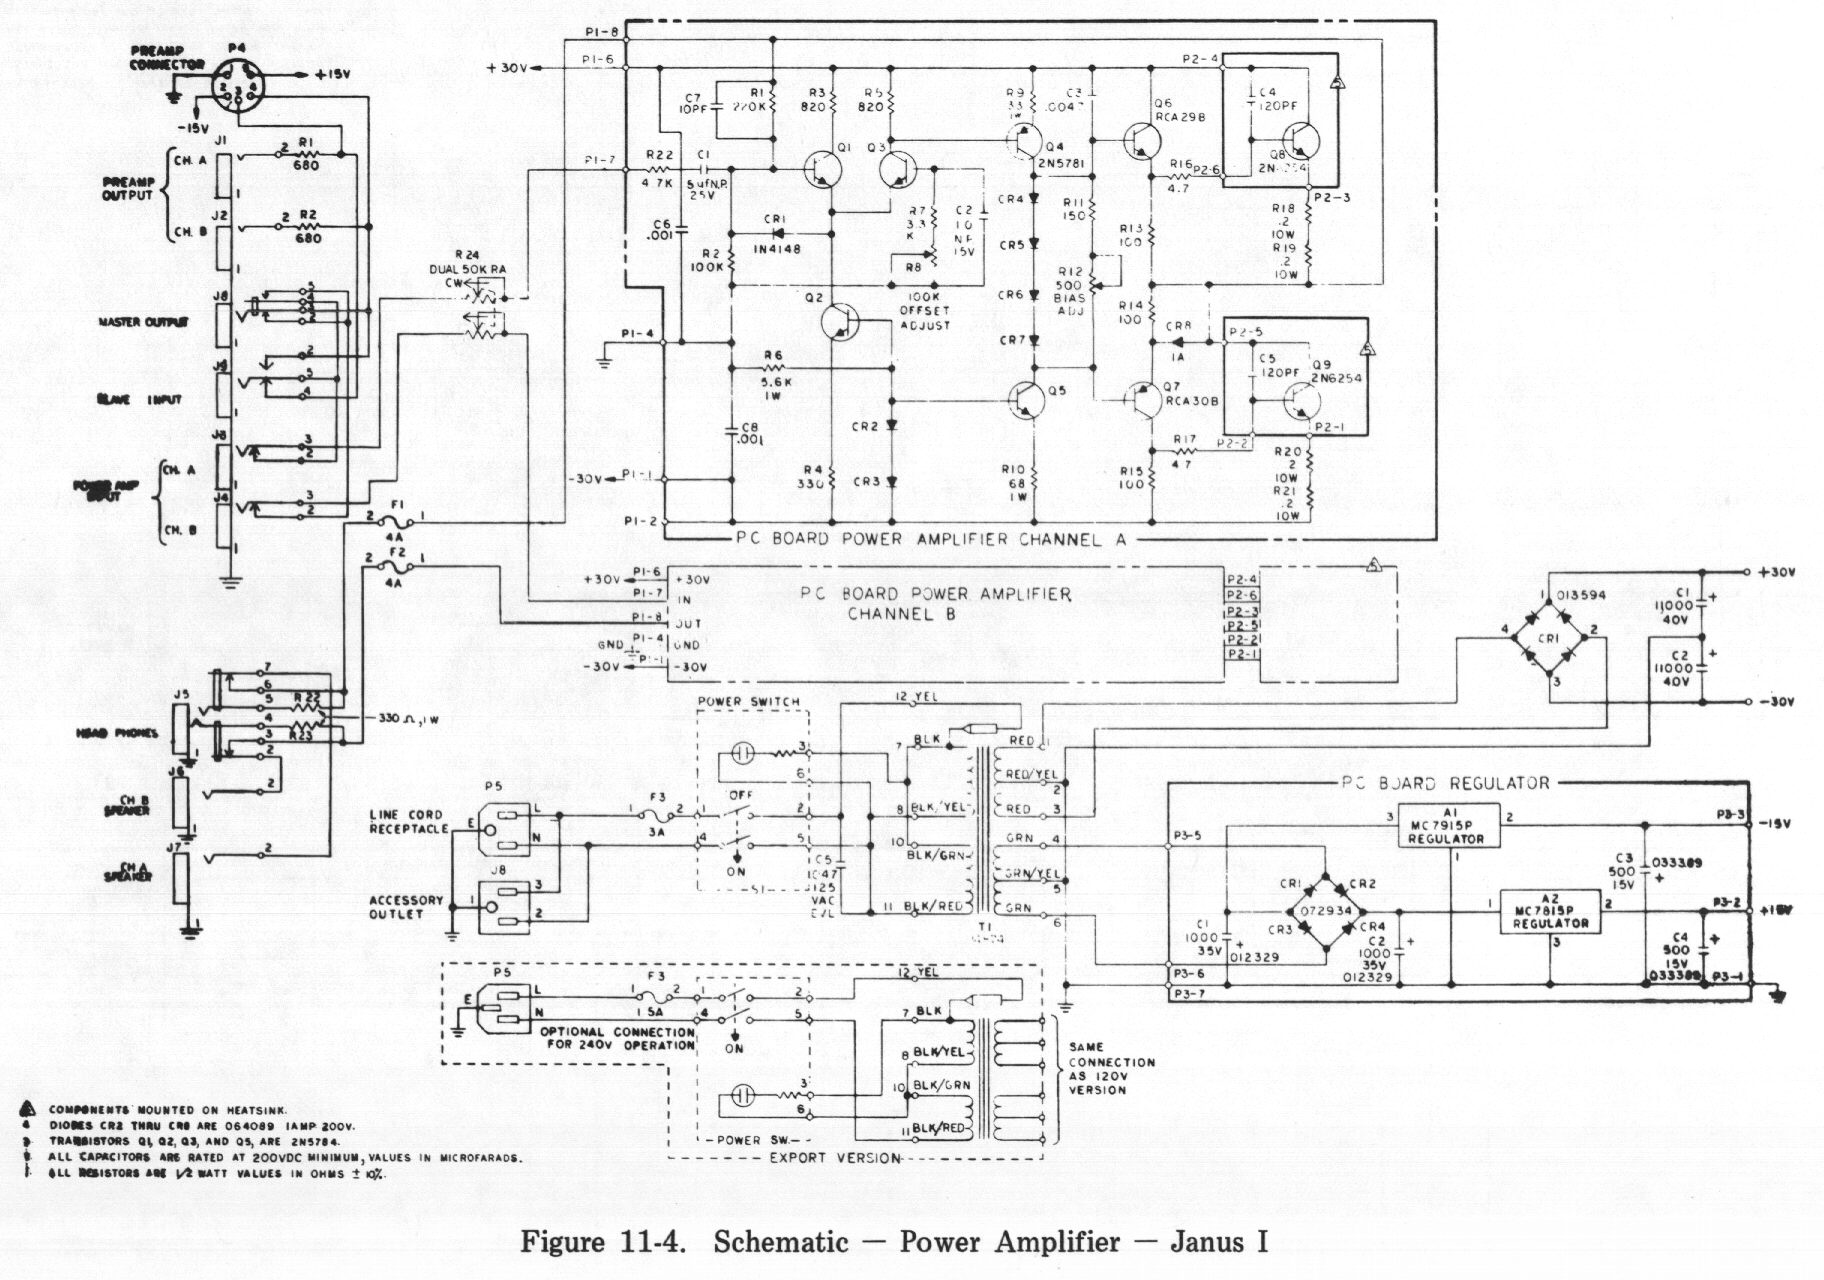 Wrg Schematic Power Amplifier